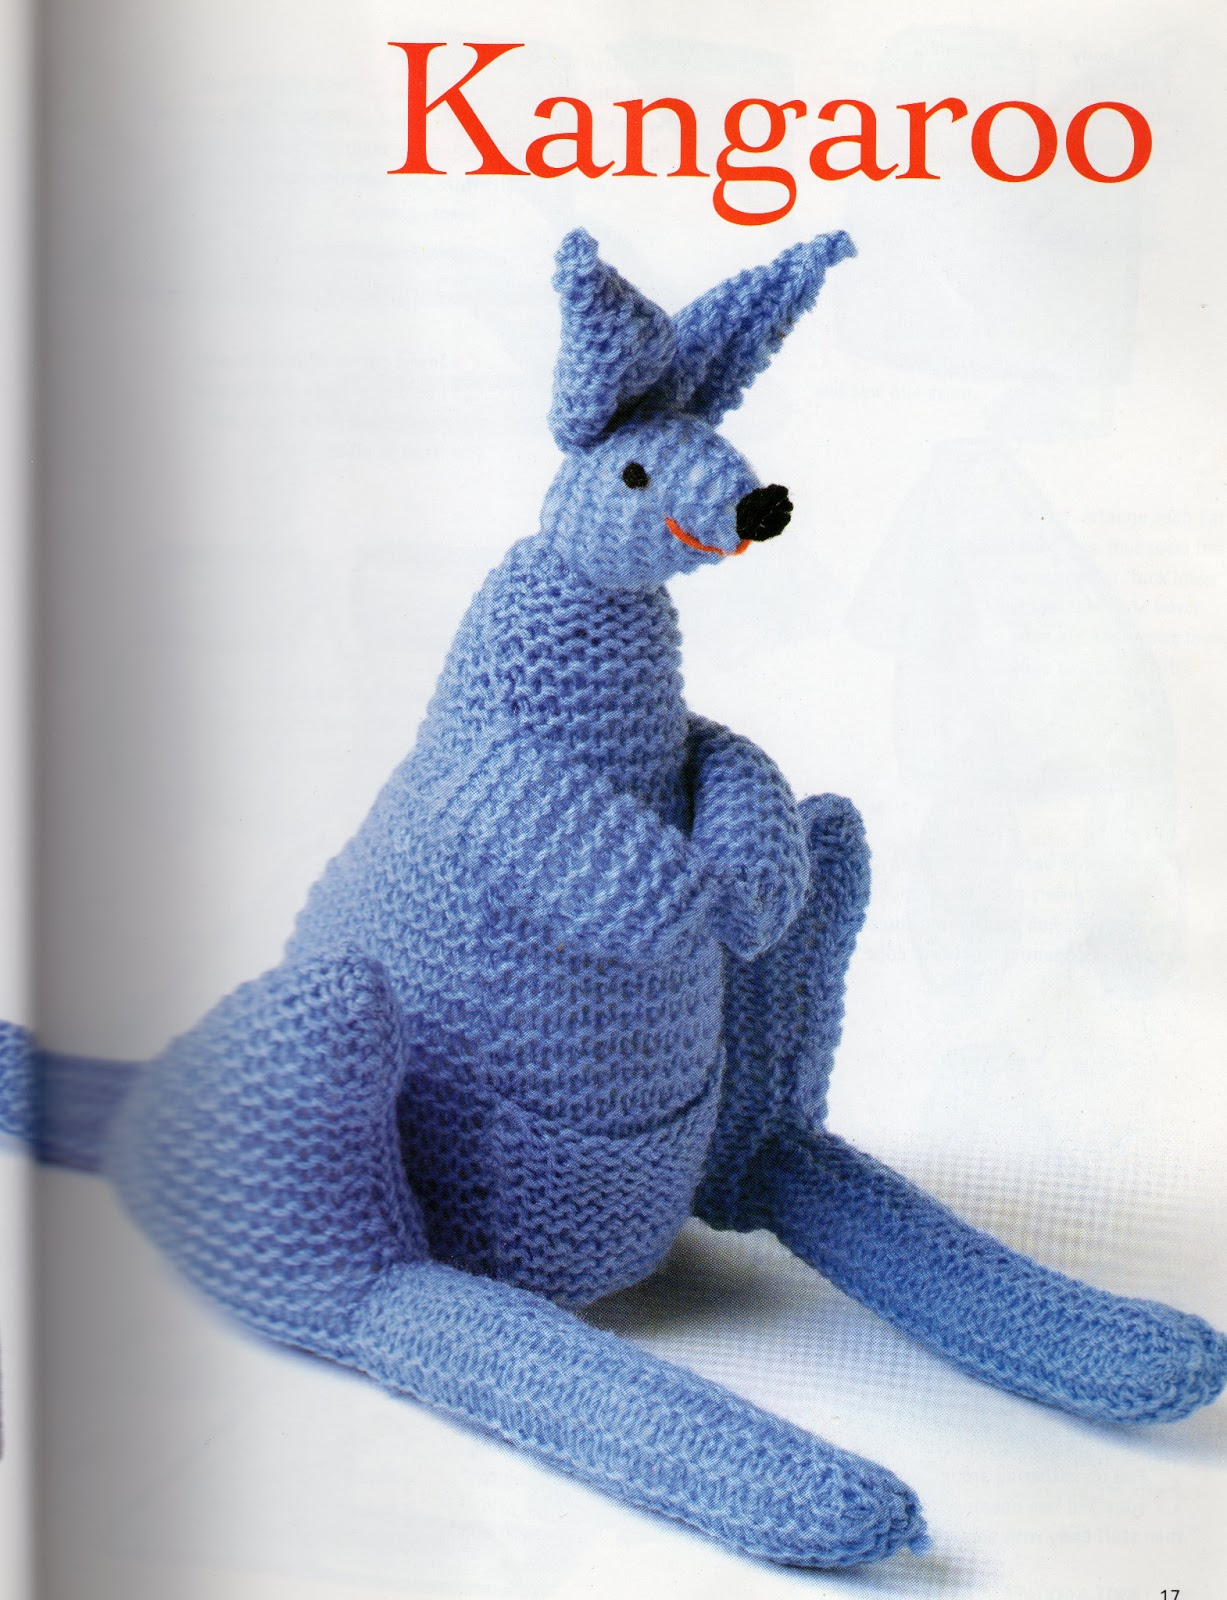 Knitographical: Our Prime Minister Knits - So What?